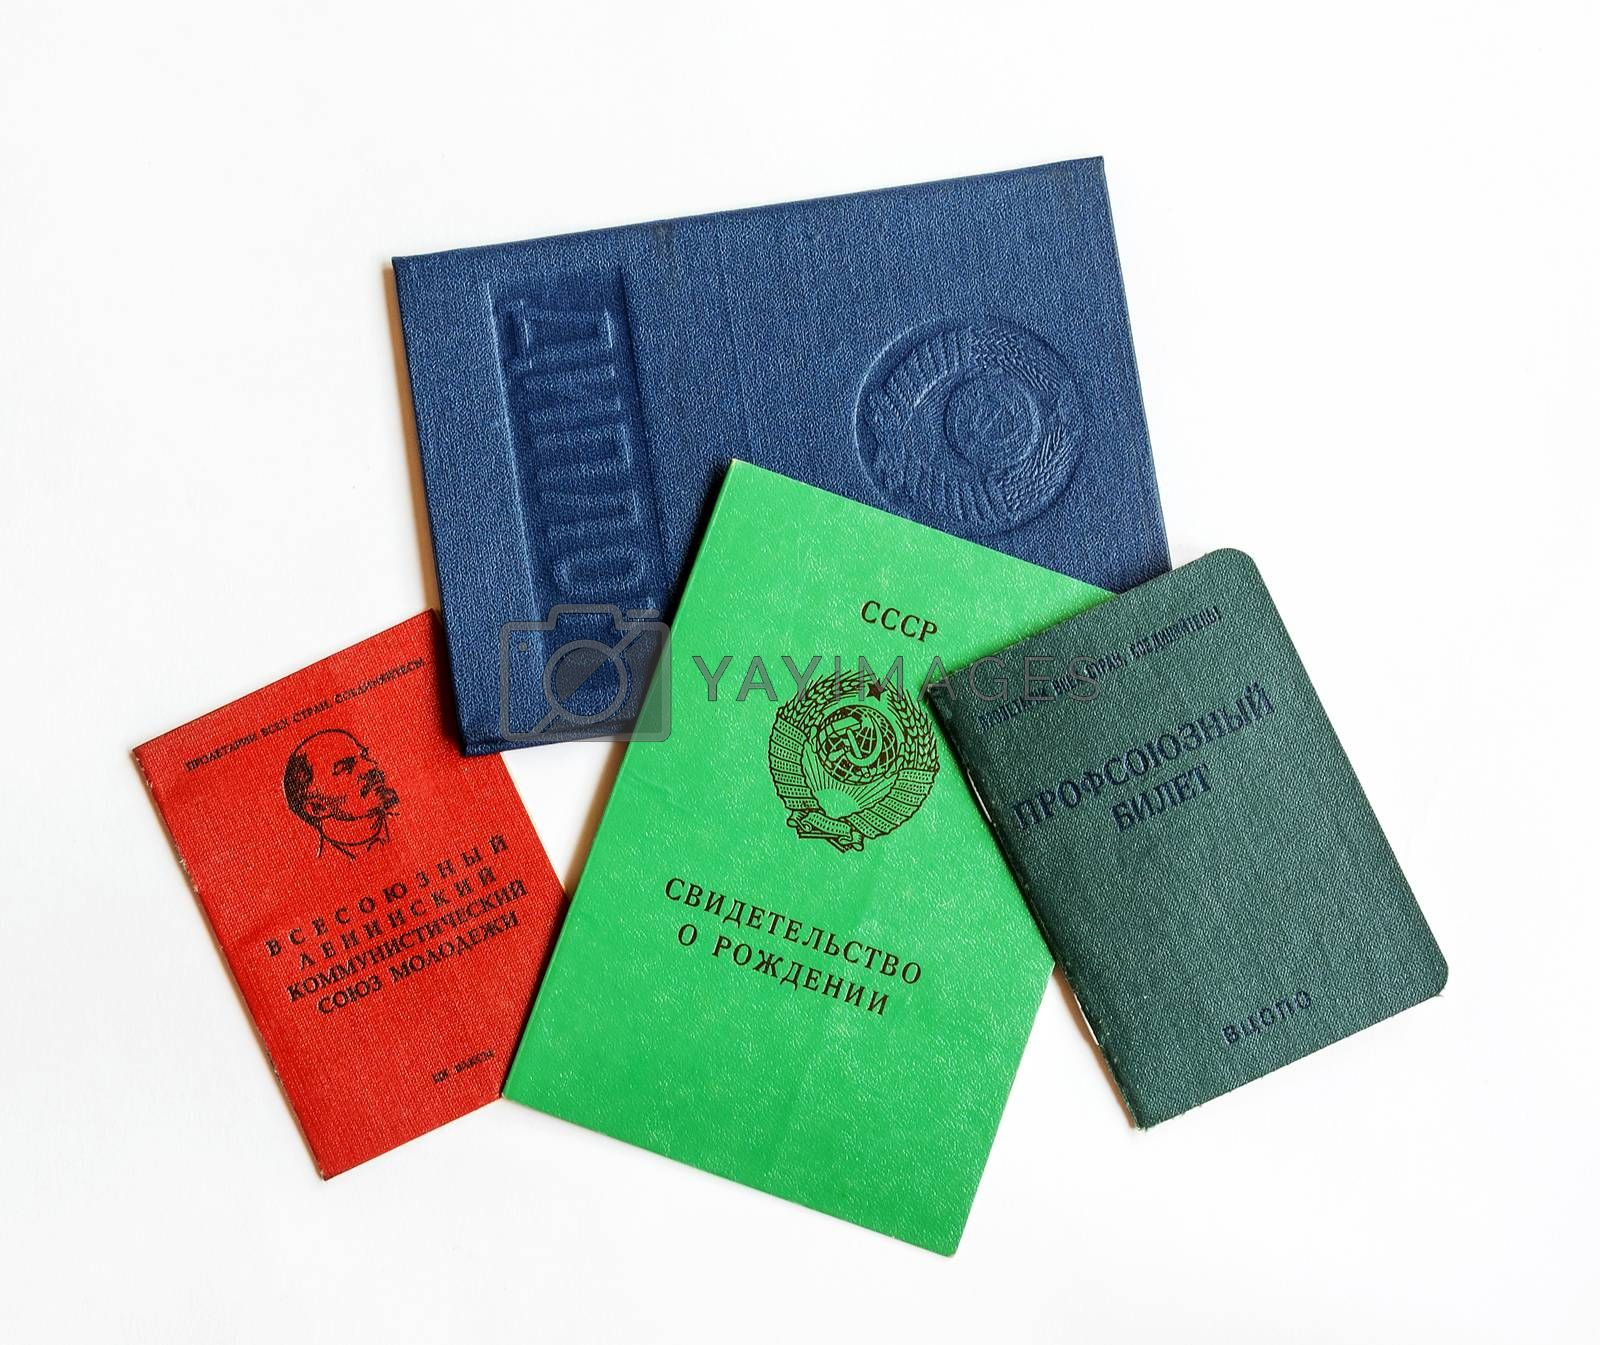 The documents of citizens of the Soviet Union confirming the identity, education and belonging to some community organizations